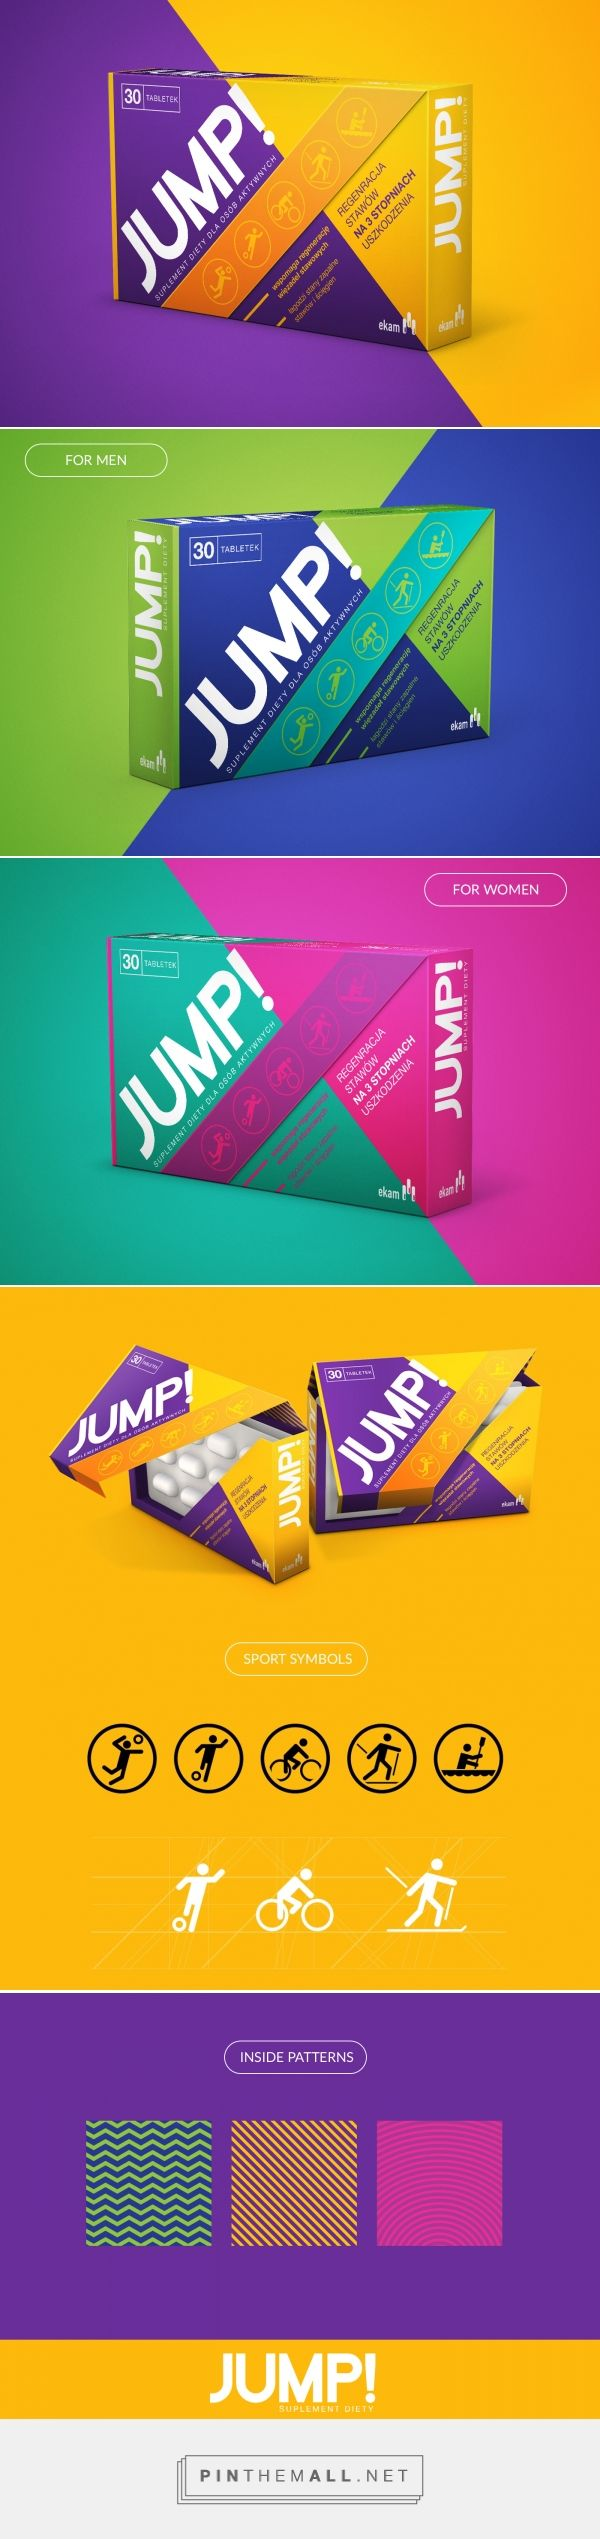 Jump! Joint Health (Concept) - Packaging of the World - Creative Package Design Gallery  - http://www.packagingoftheworld.com/2016/10/jump-joint-health-concept.html